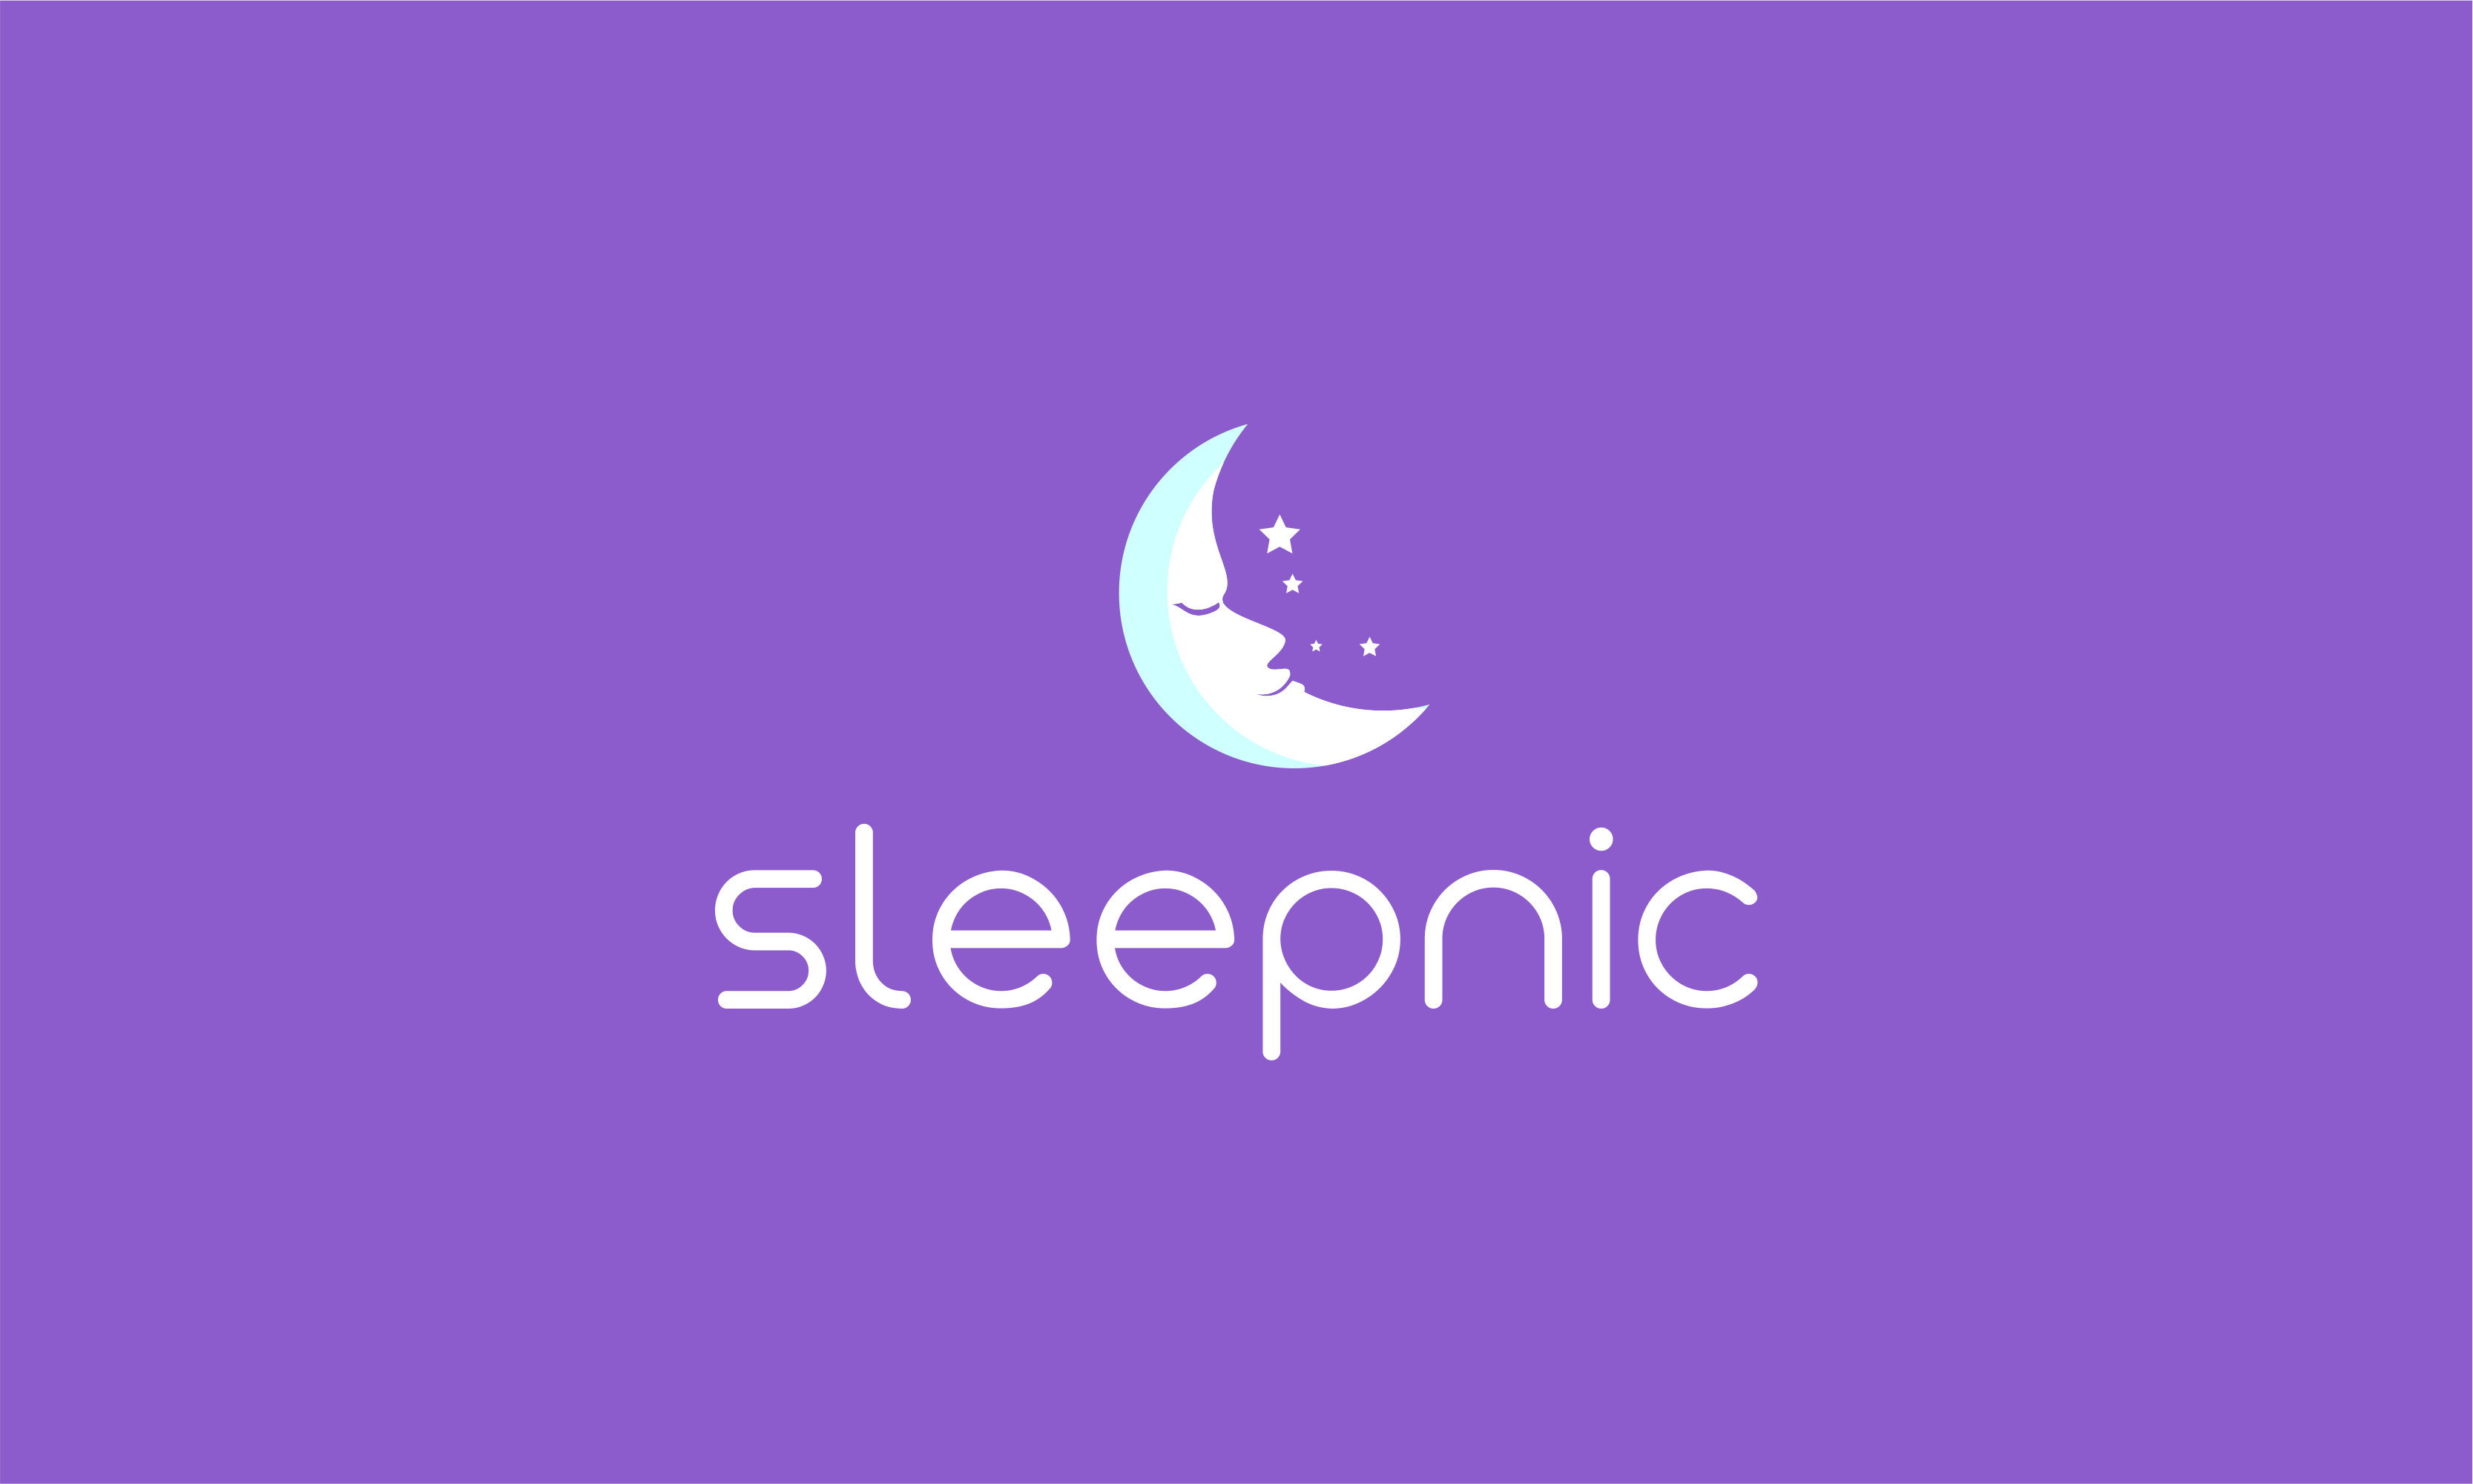 Sleepnic - Wellness domain name for sale